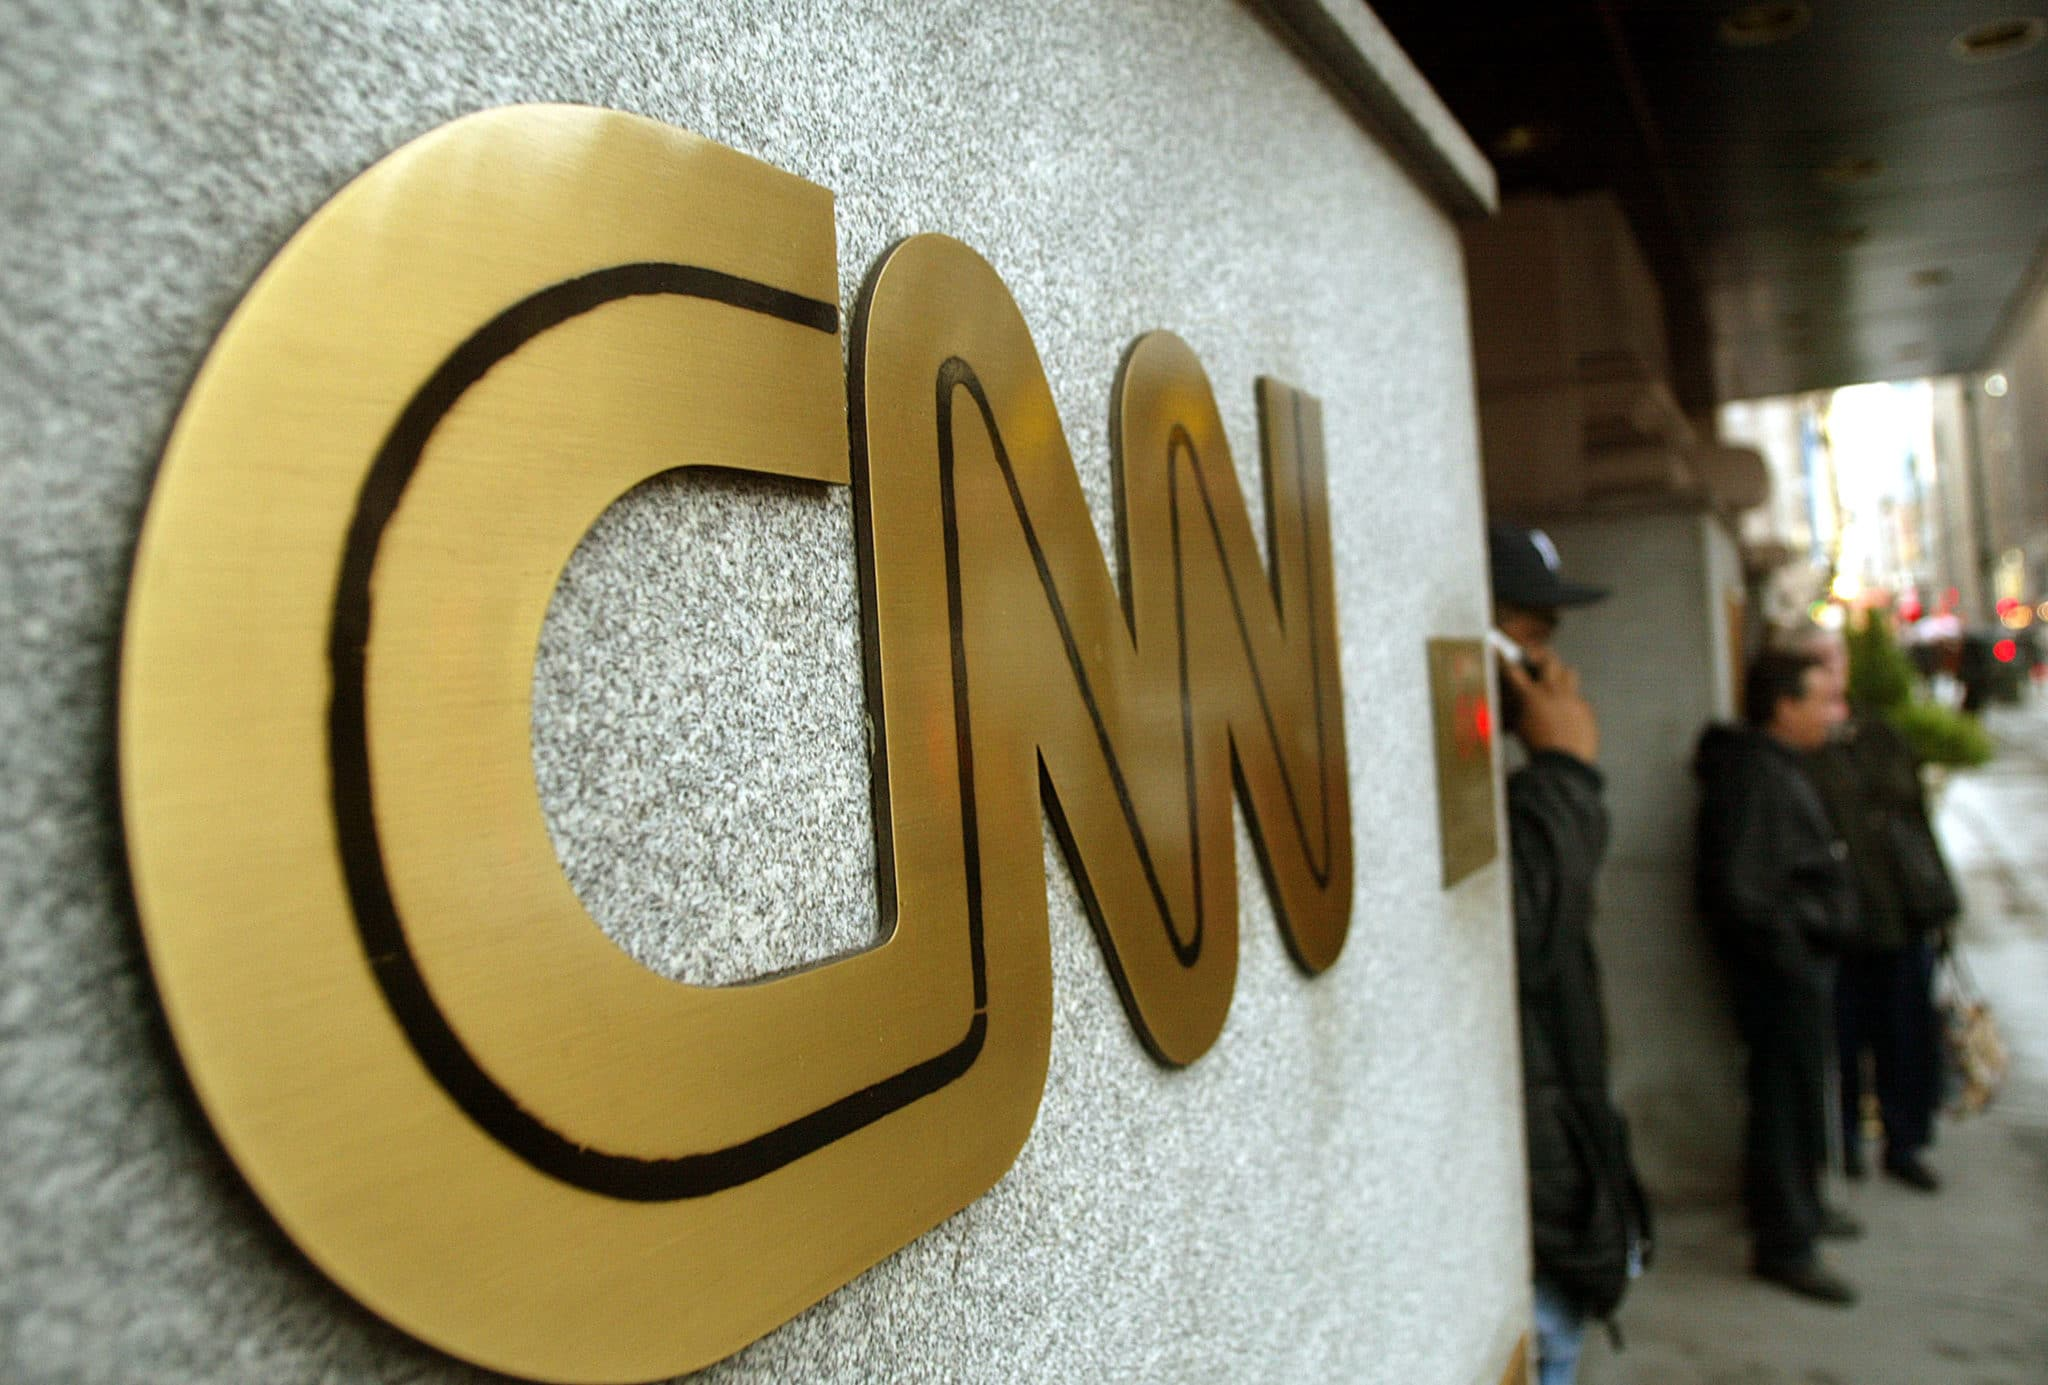 CNN Misses Revenue Targets by $100+ Million